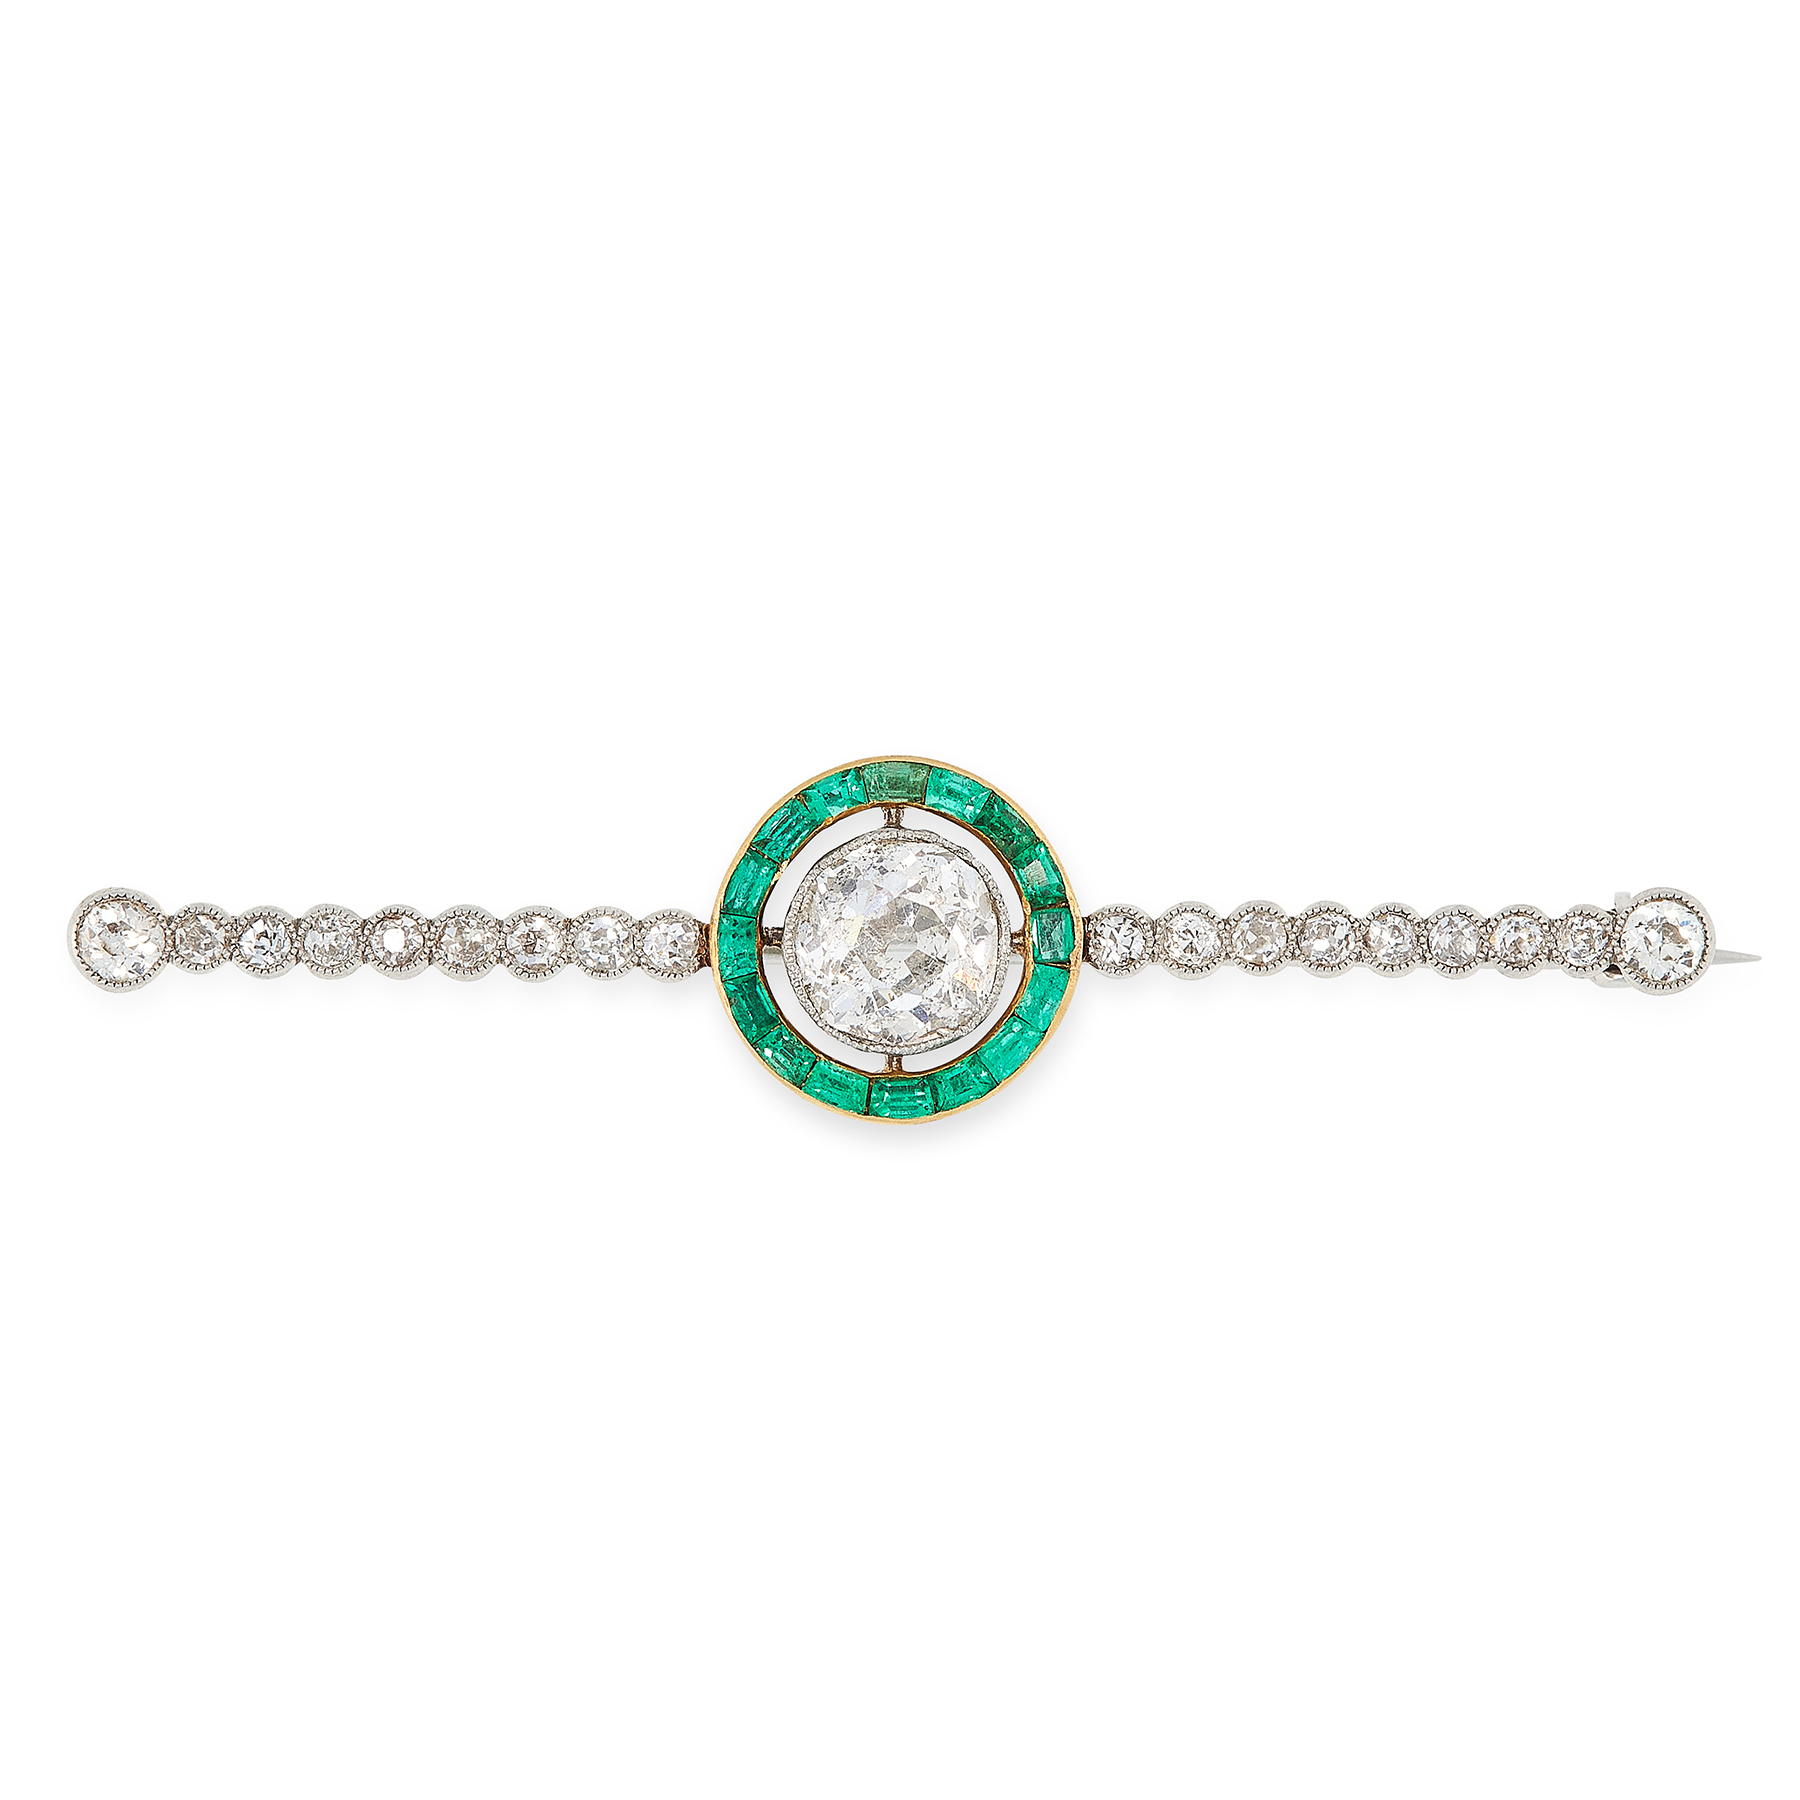 A DIAMOND AND EMERALD BROOCH, CIRCA 1930 set with an old cut diamond of 1.19 carats within a